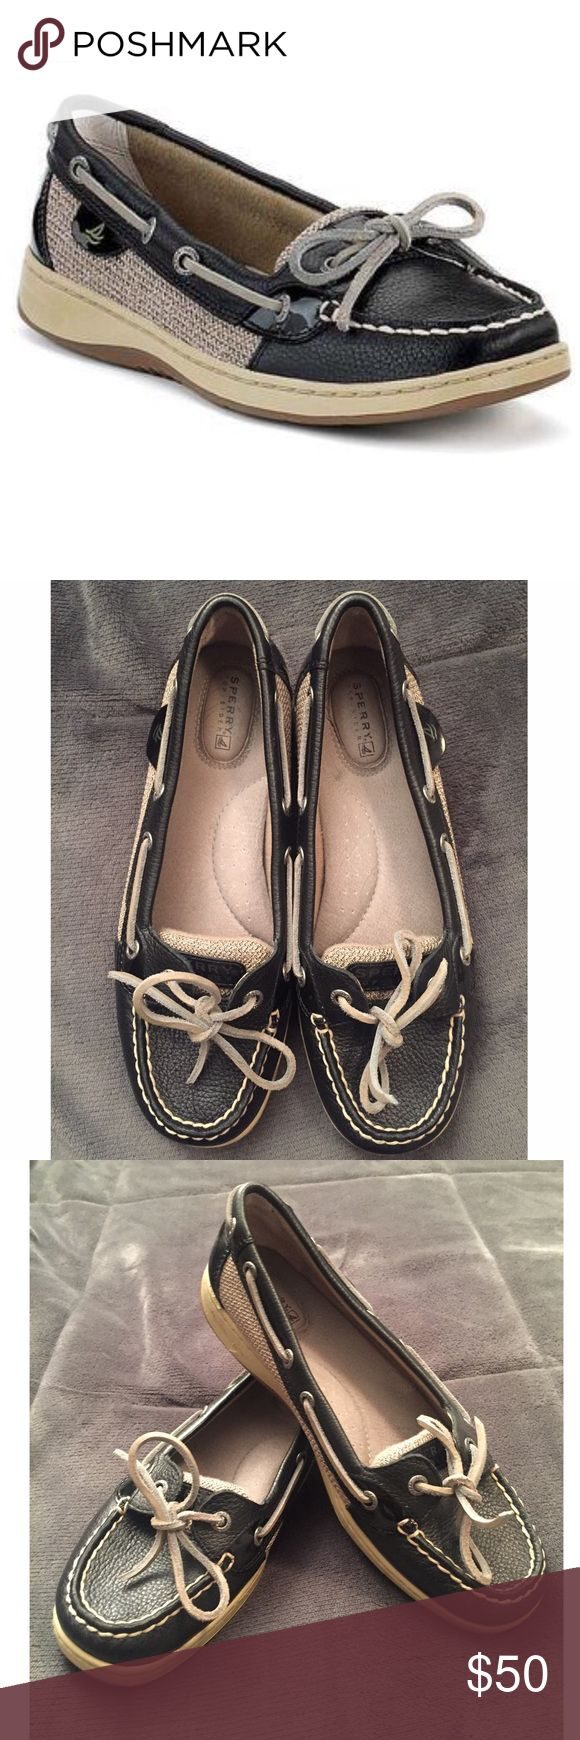 Sperry Women's Angelfish Slip-On Boat Shoes Never worn Sperry boat shoe. Black and Tan. NEW without box. Open to offers! Sperry Shoes